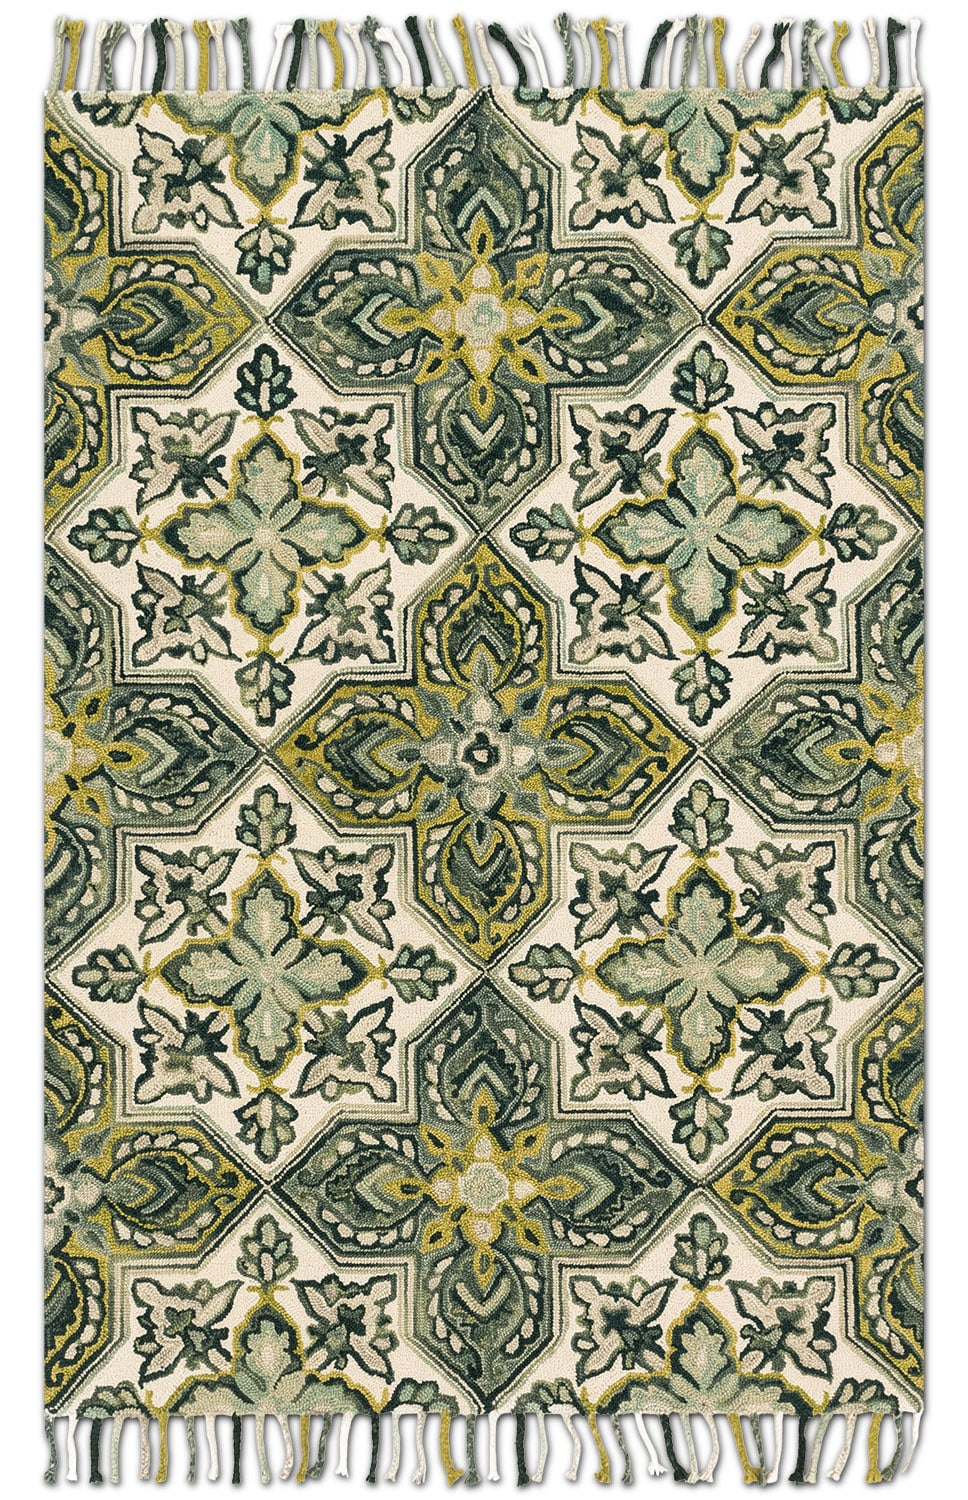 Brushstroke 4' x 6' Rug - Ivory and Emerald